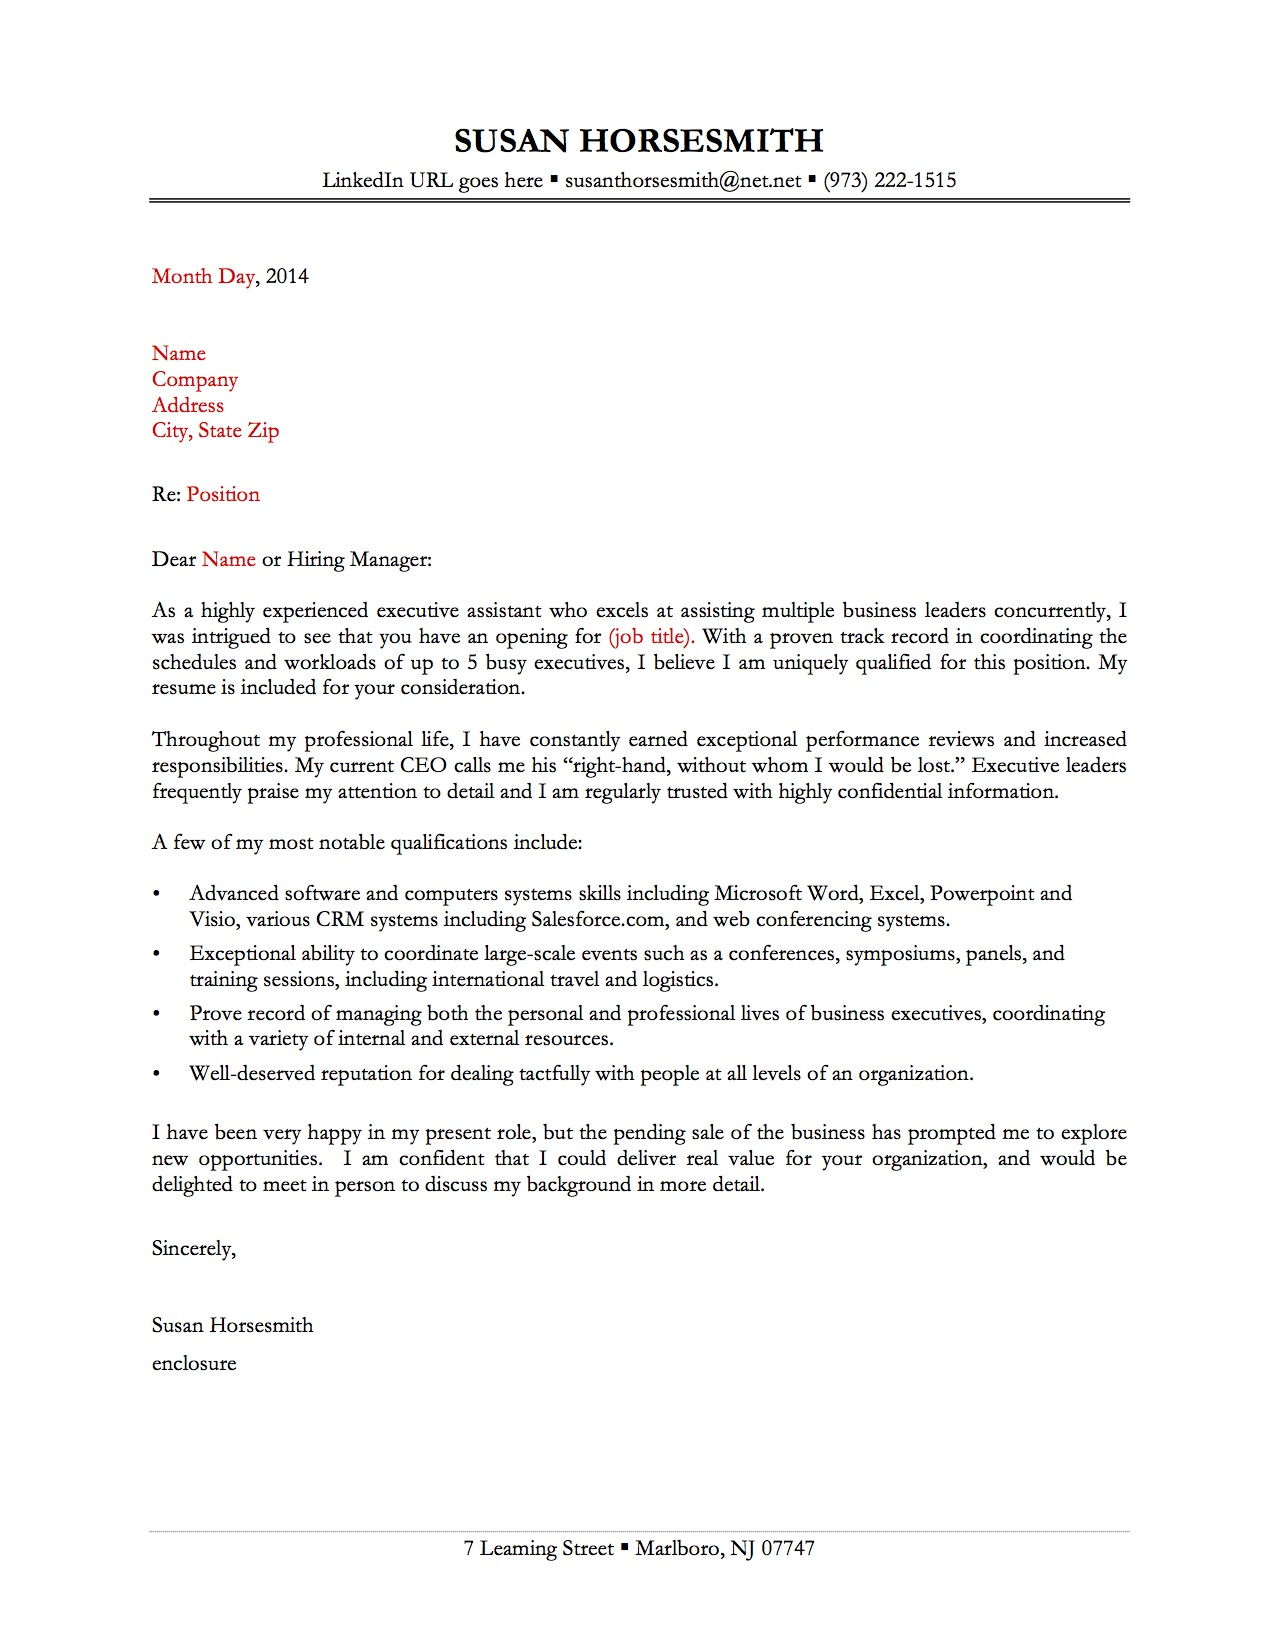 sample cover letter 1 - Covering Letter Administrative Assistant